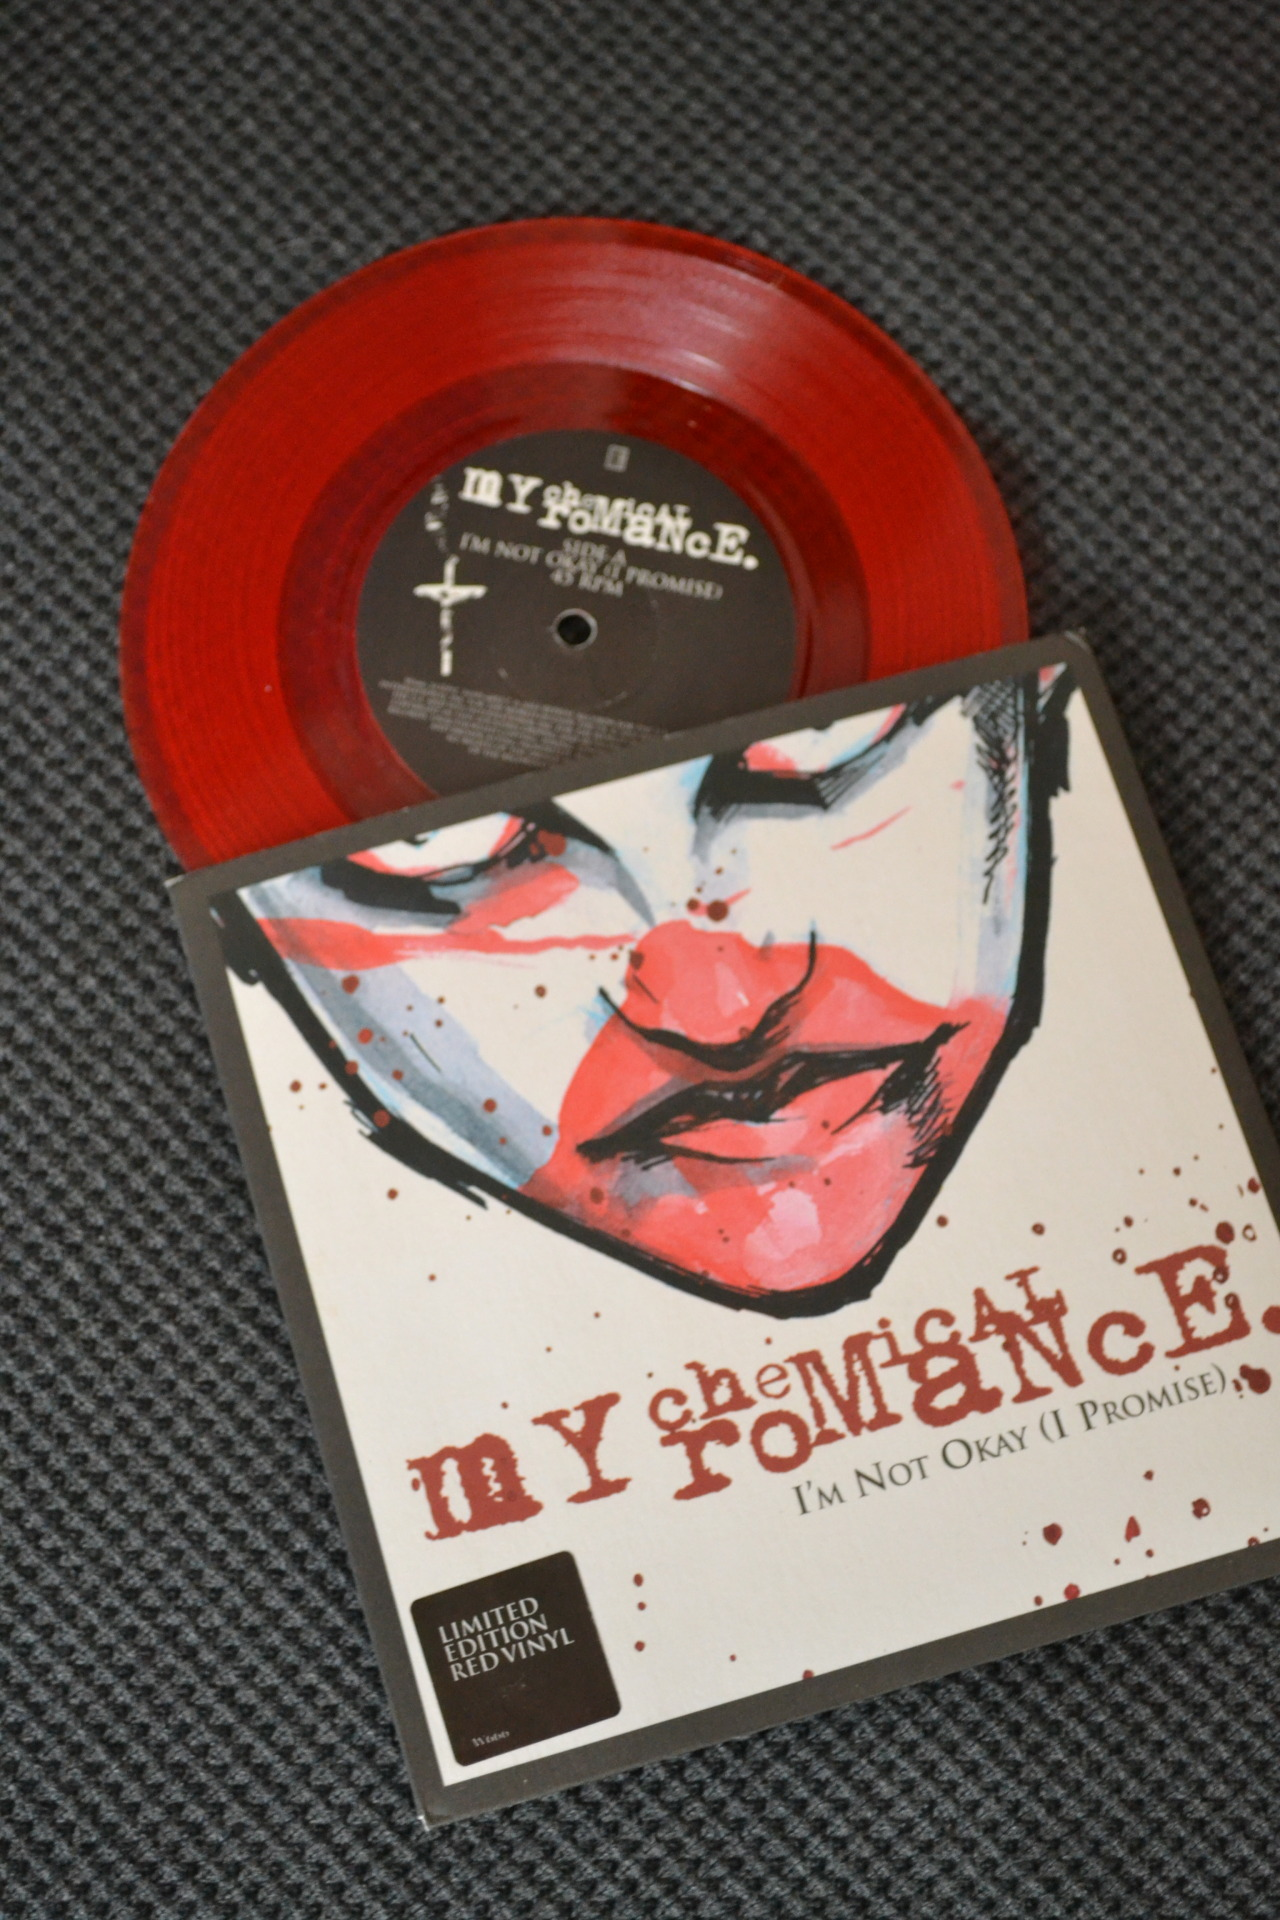 My Chemical Romance - I'm Not Okay (1st Pressing, Translucent Red, /???) | Warner/Reprise